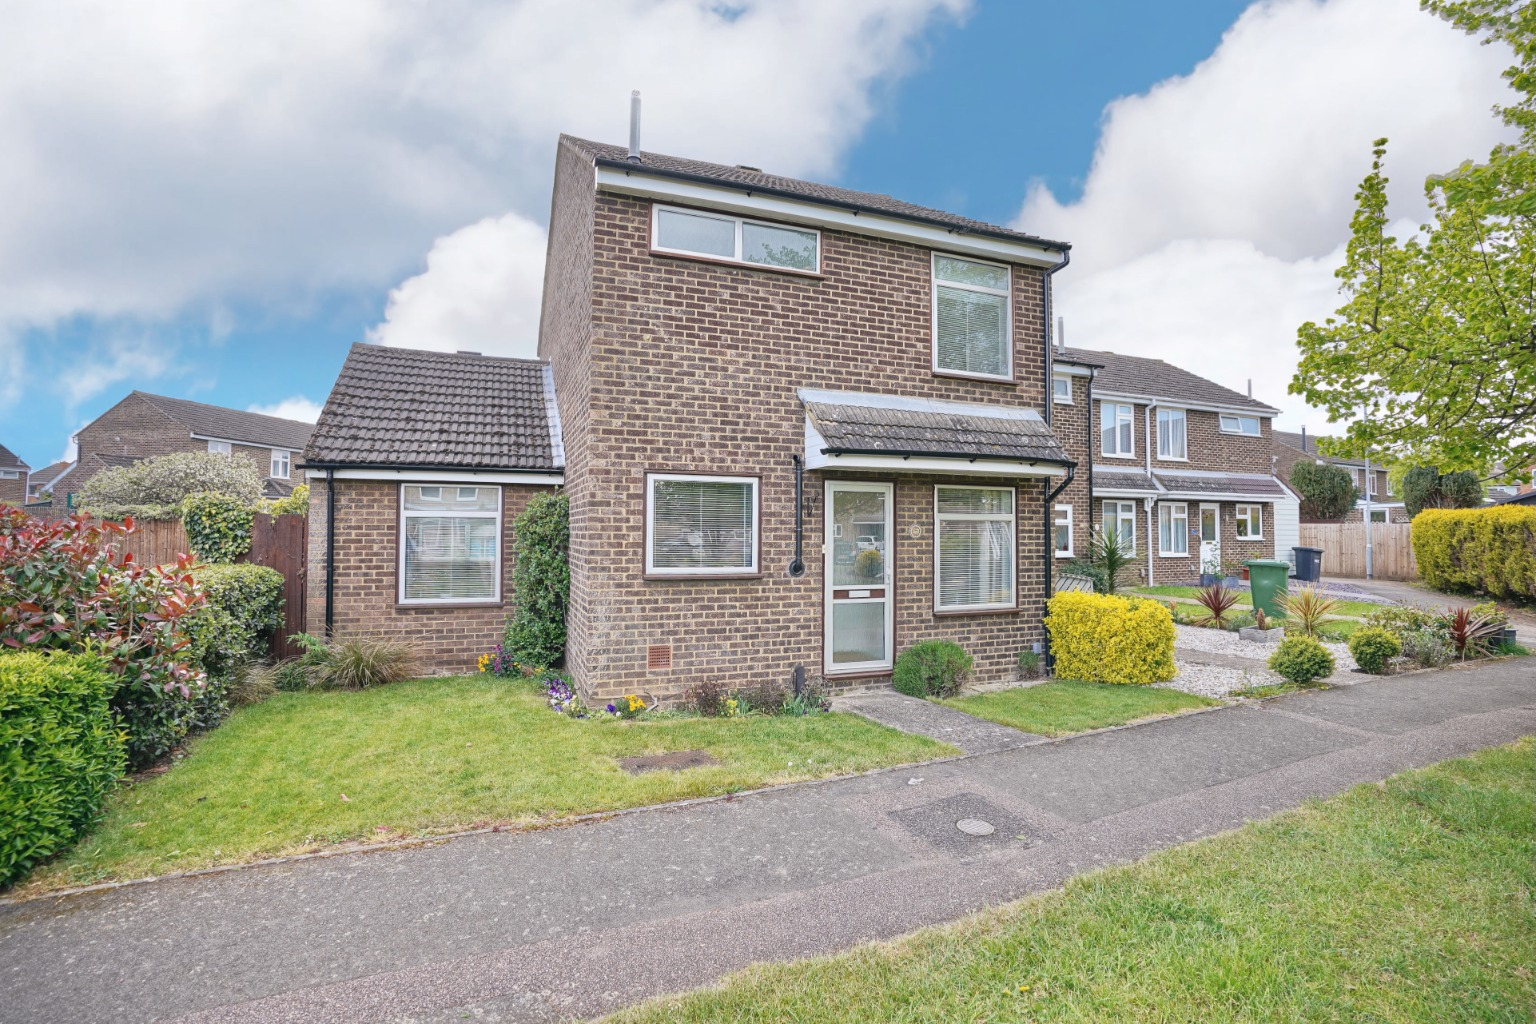 3 bed end of terrace house for sale in Arnhem Close, St. Neots - Property Image 1